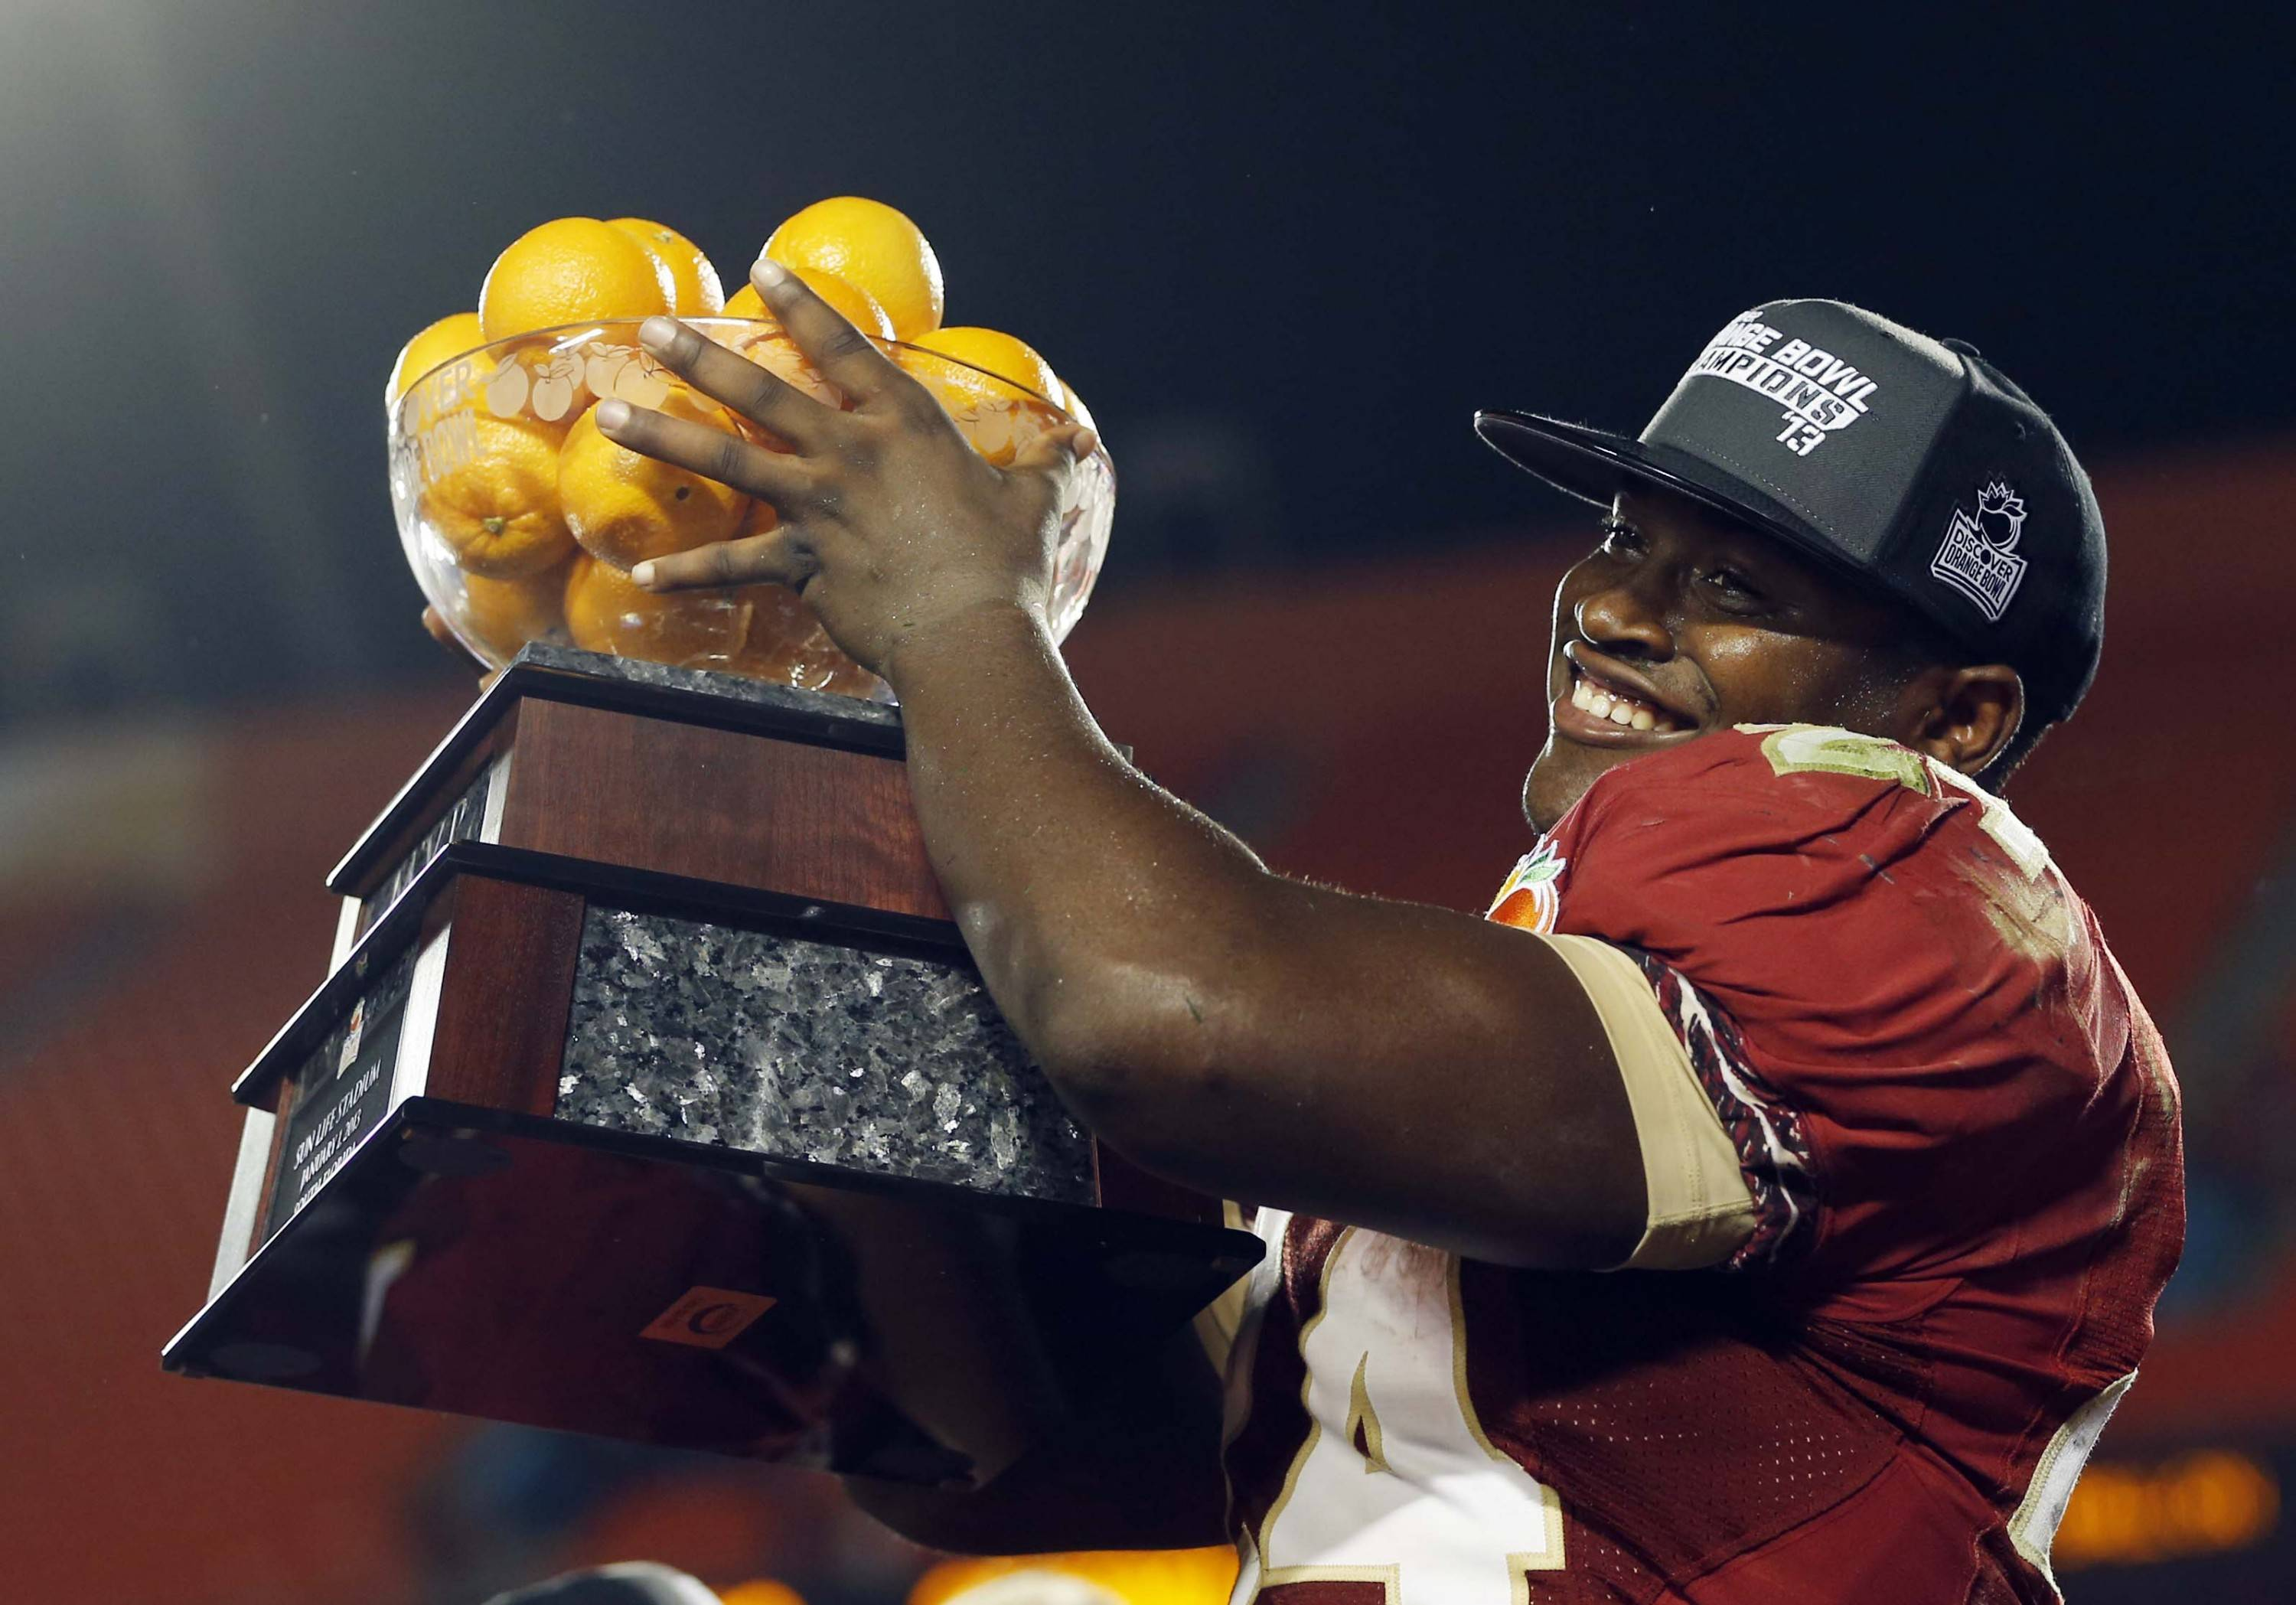 Florida State  fullback Lonnie Pryor (24) raises the MVP trophy at the Orange Bowl NCAA college football game against Northern Illinois, early Wednesday, Jan. 2, 2013, in Miami. Florida State defeated Northern Illinois 31-10. Pryor ran for a career-high 134 yards and two touchdowns. (AP Photo/Alan Diaz)